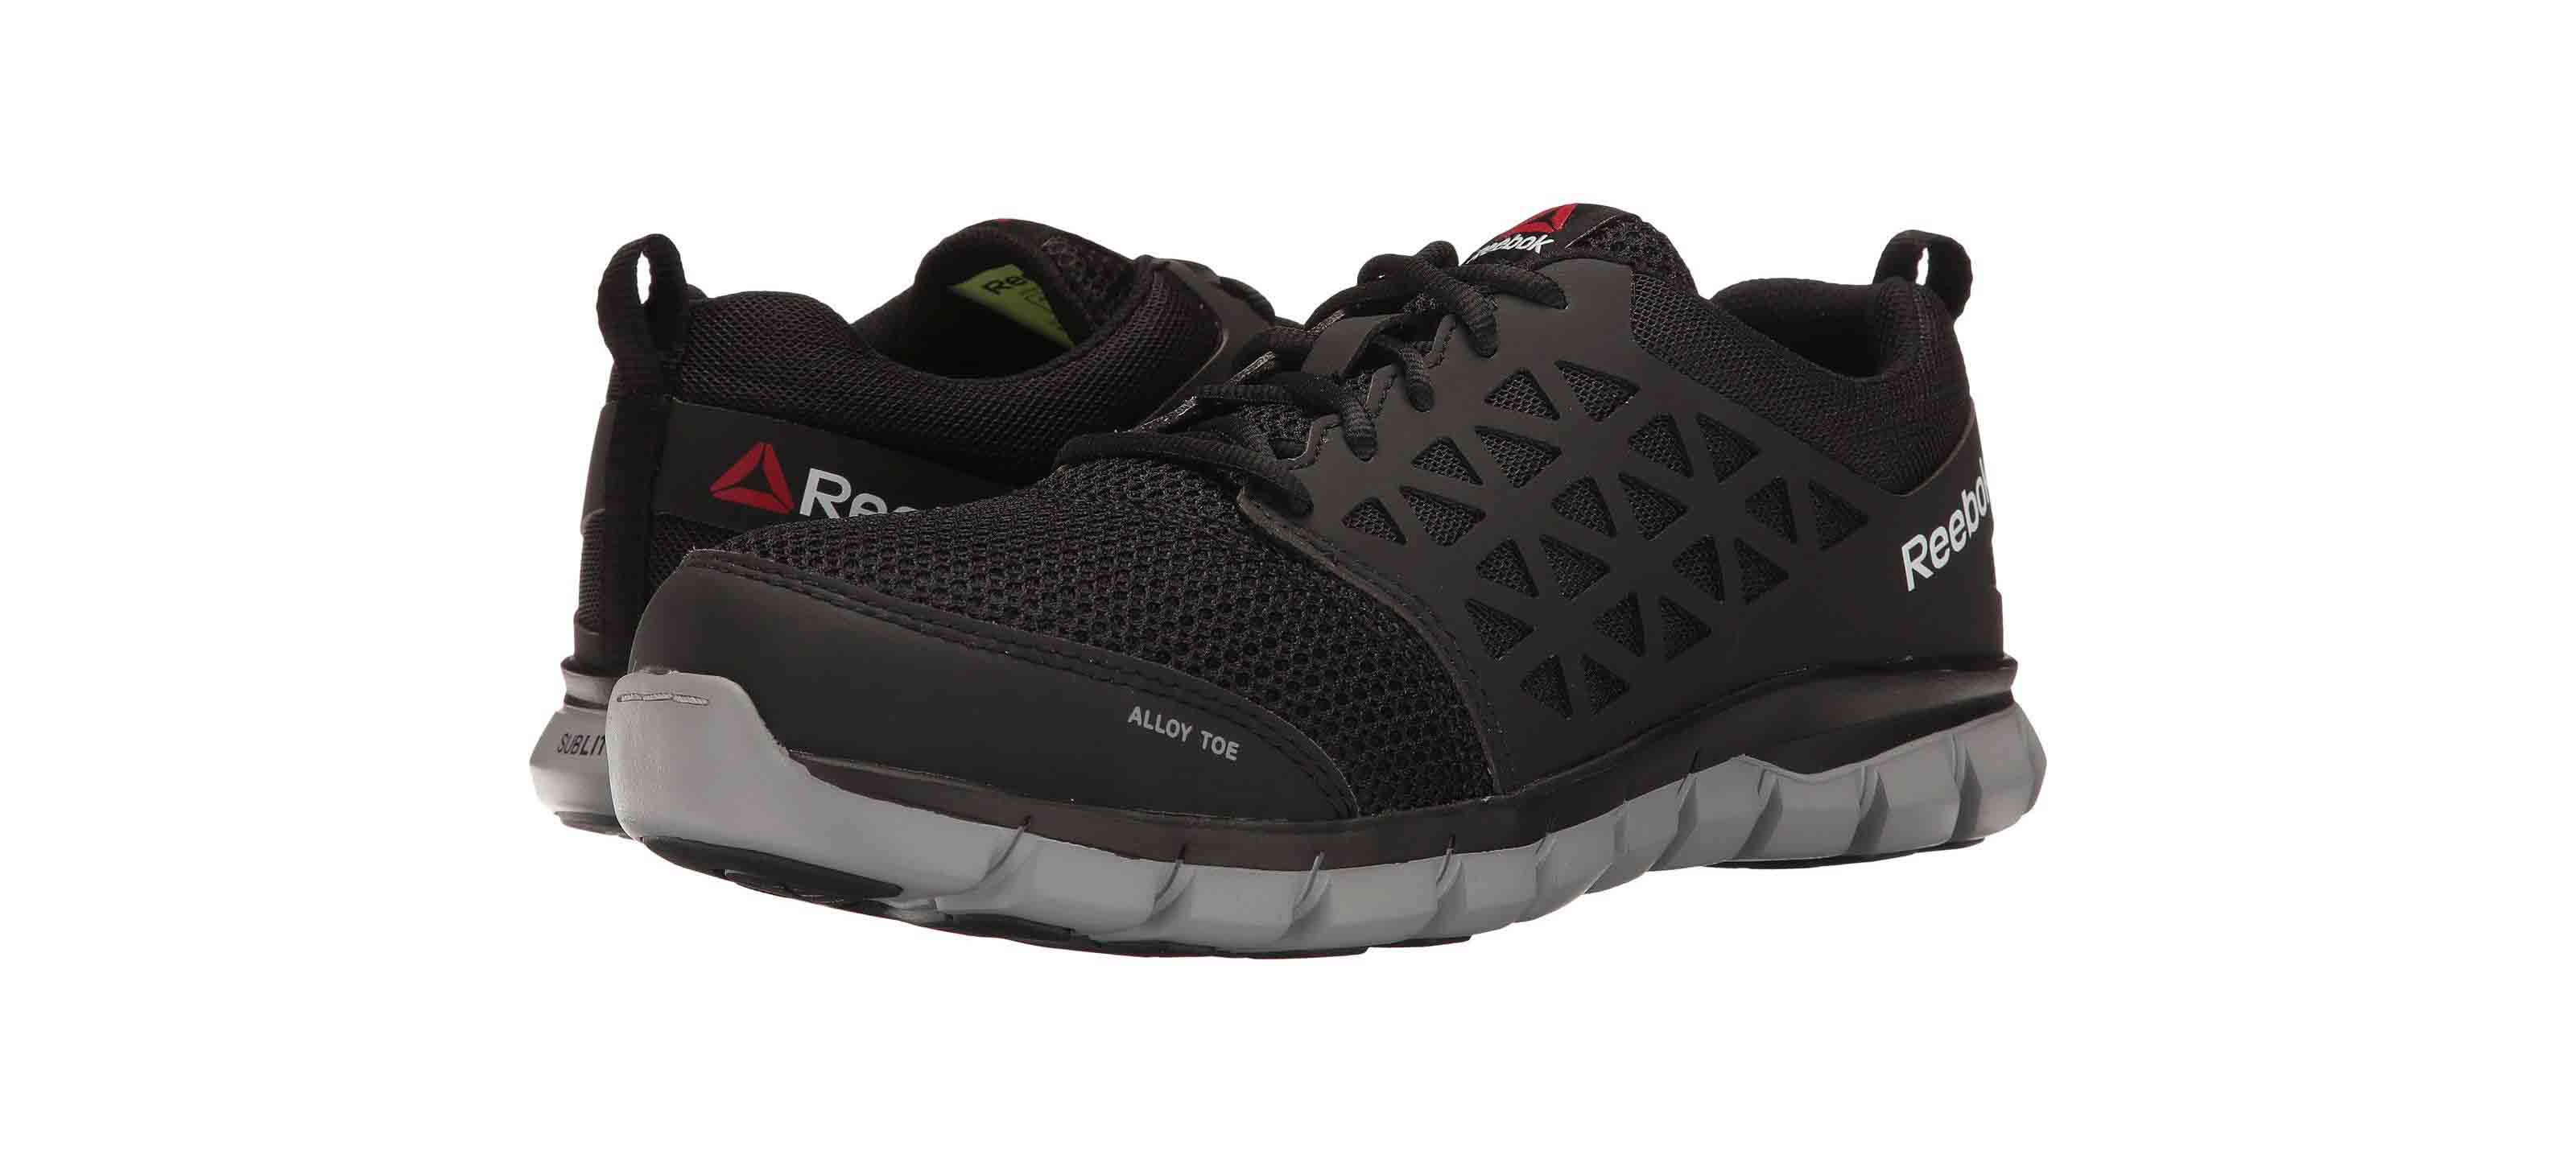 Work With These Reebok Work Shoes